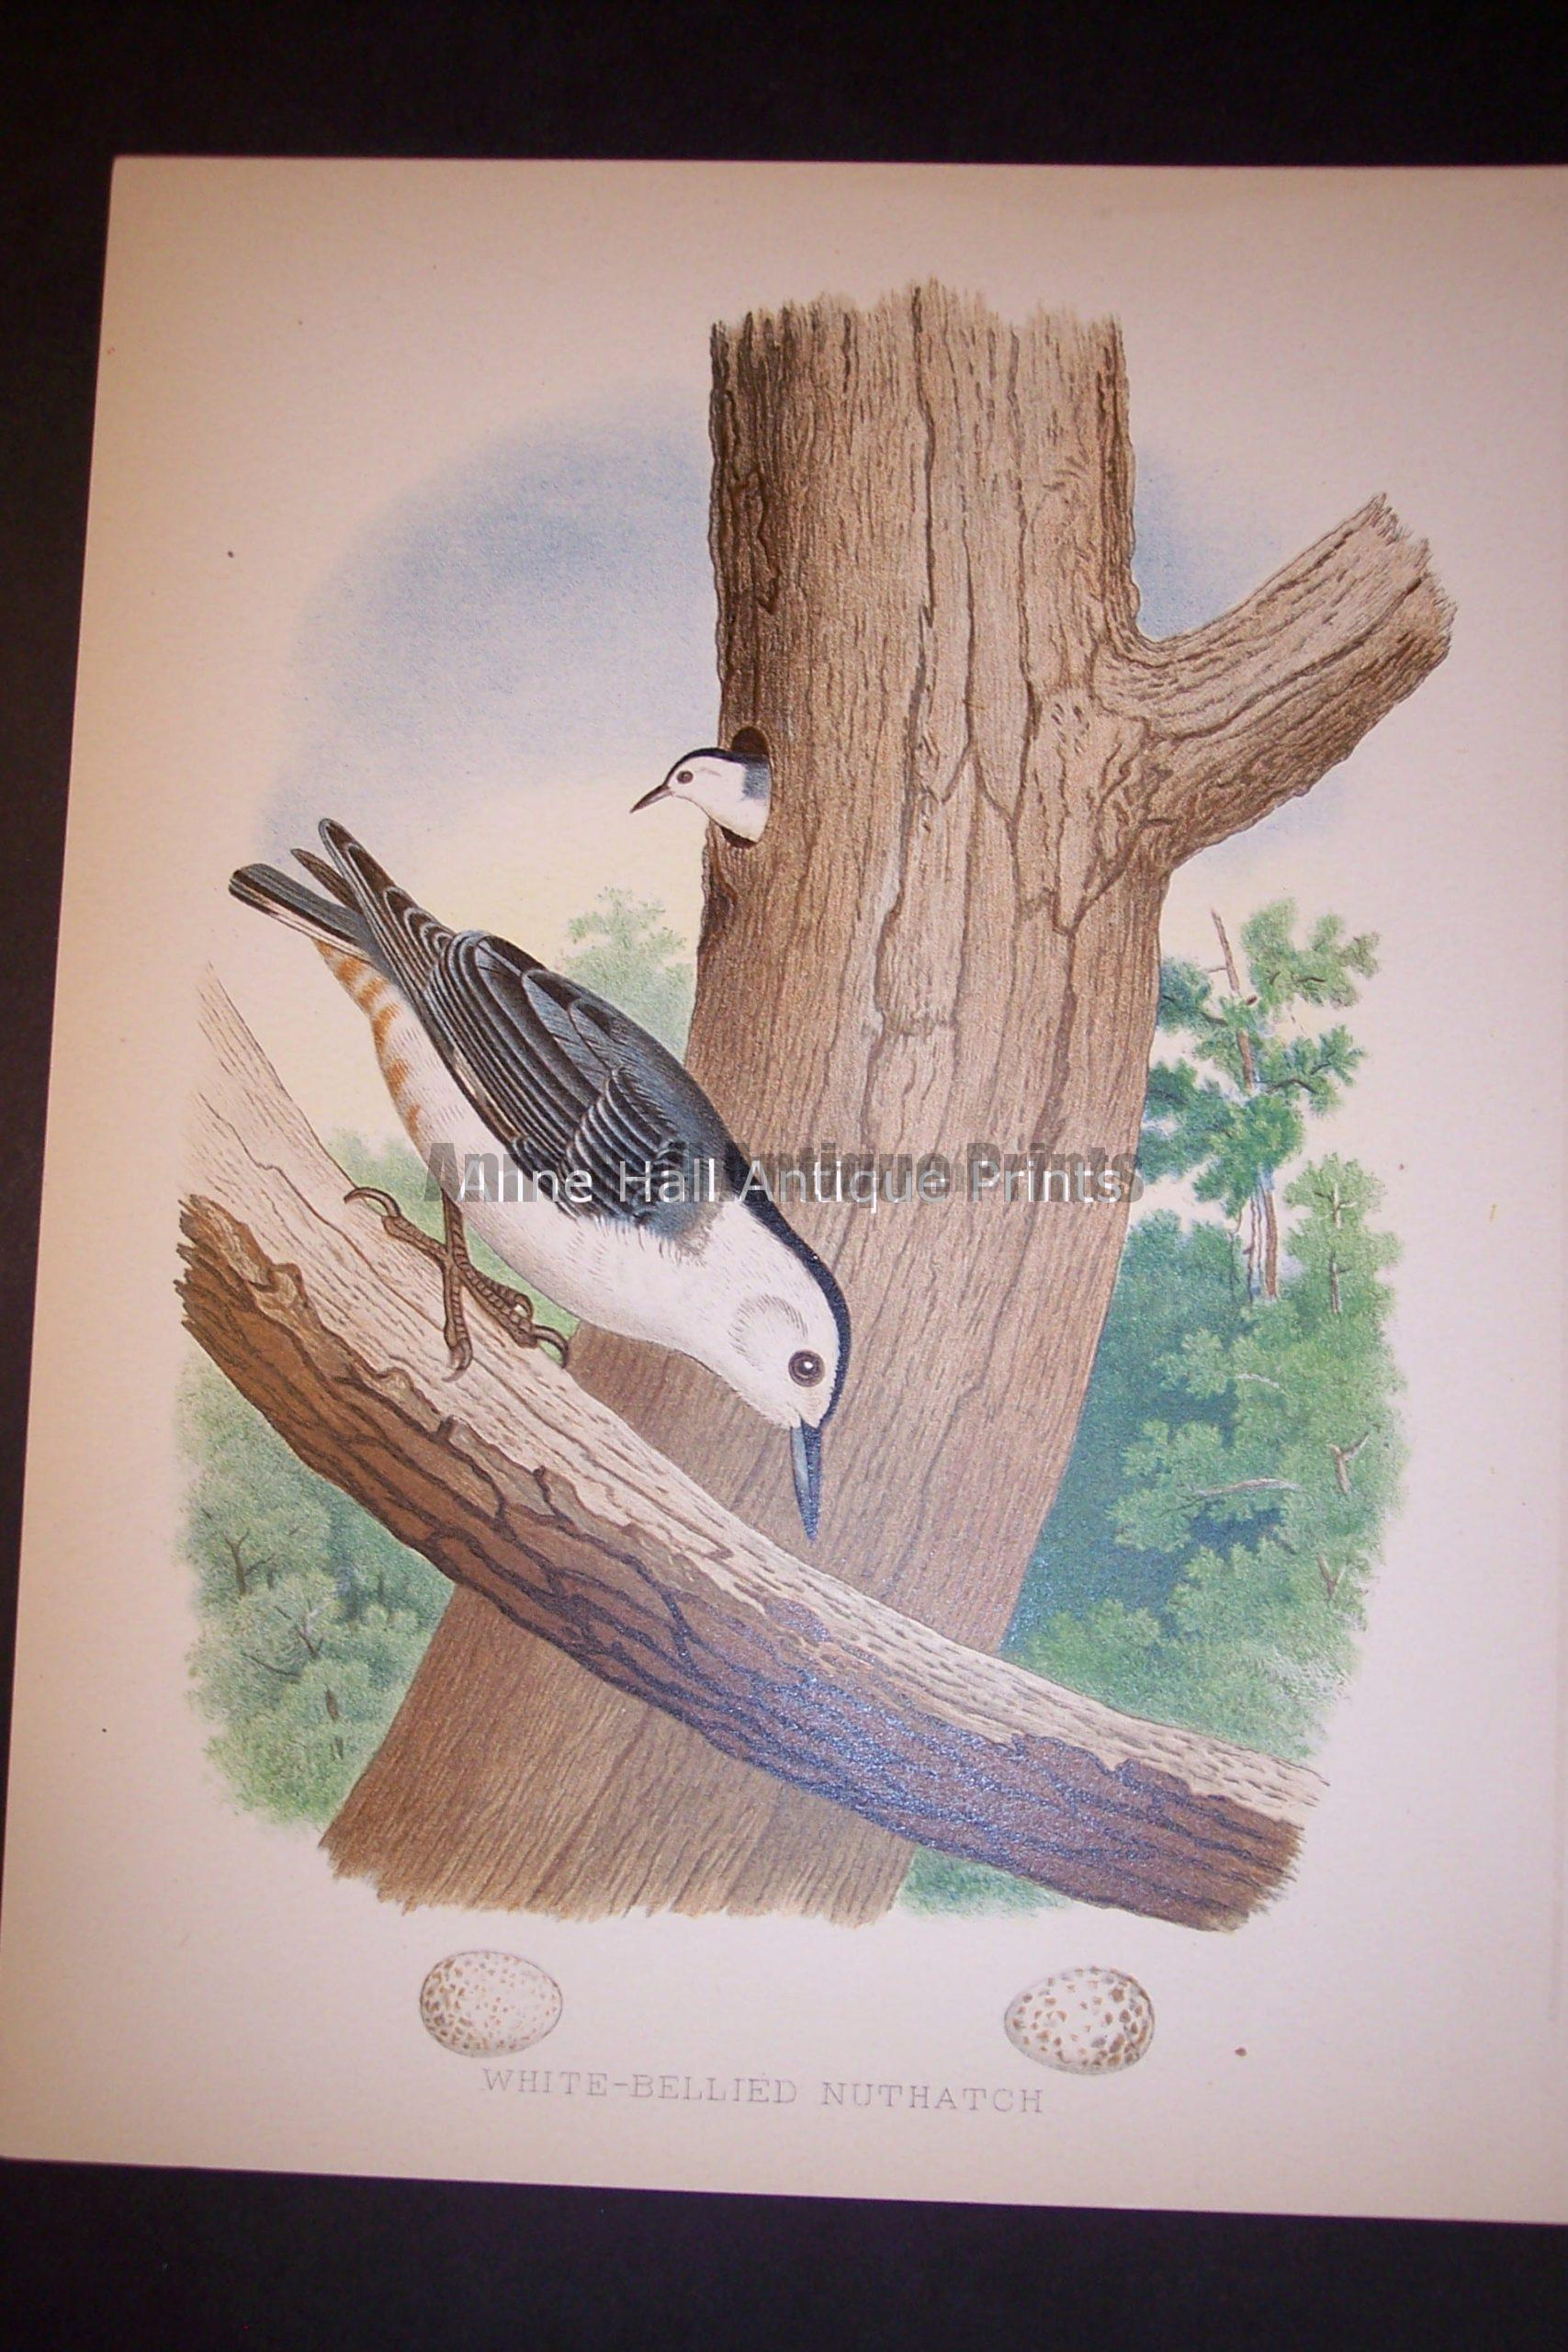 """Thomas Gentry American Bird Chromolithograph 9 1/4 x 12"""" from 1888. 0212 Nuthatch 100."""